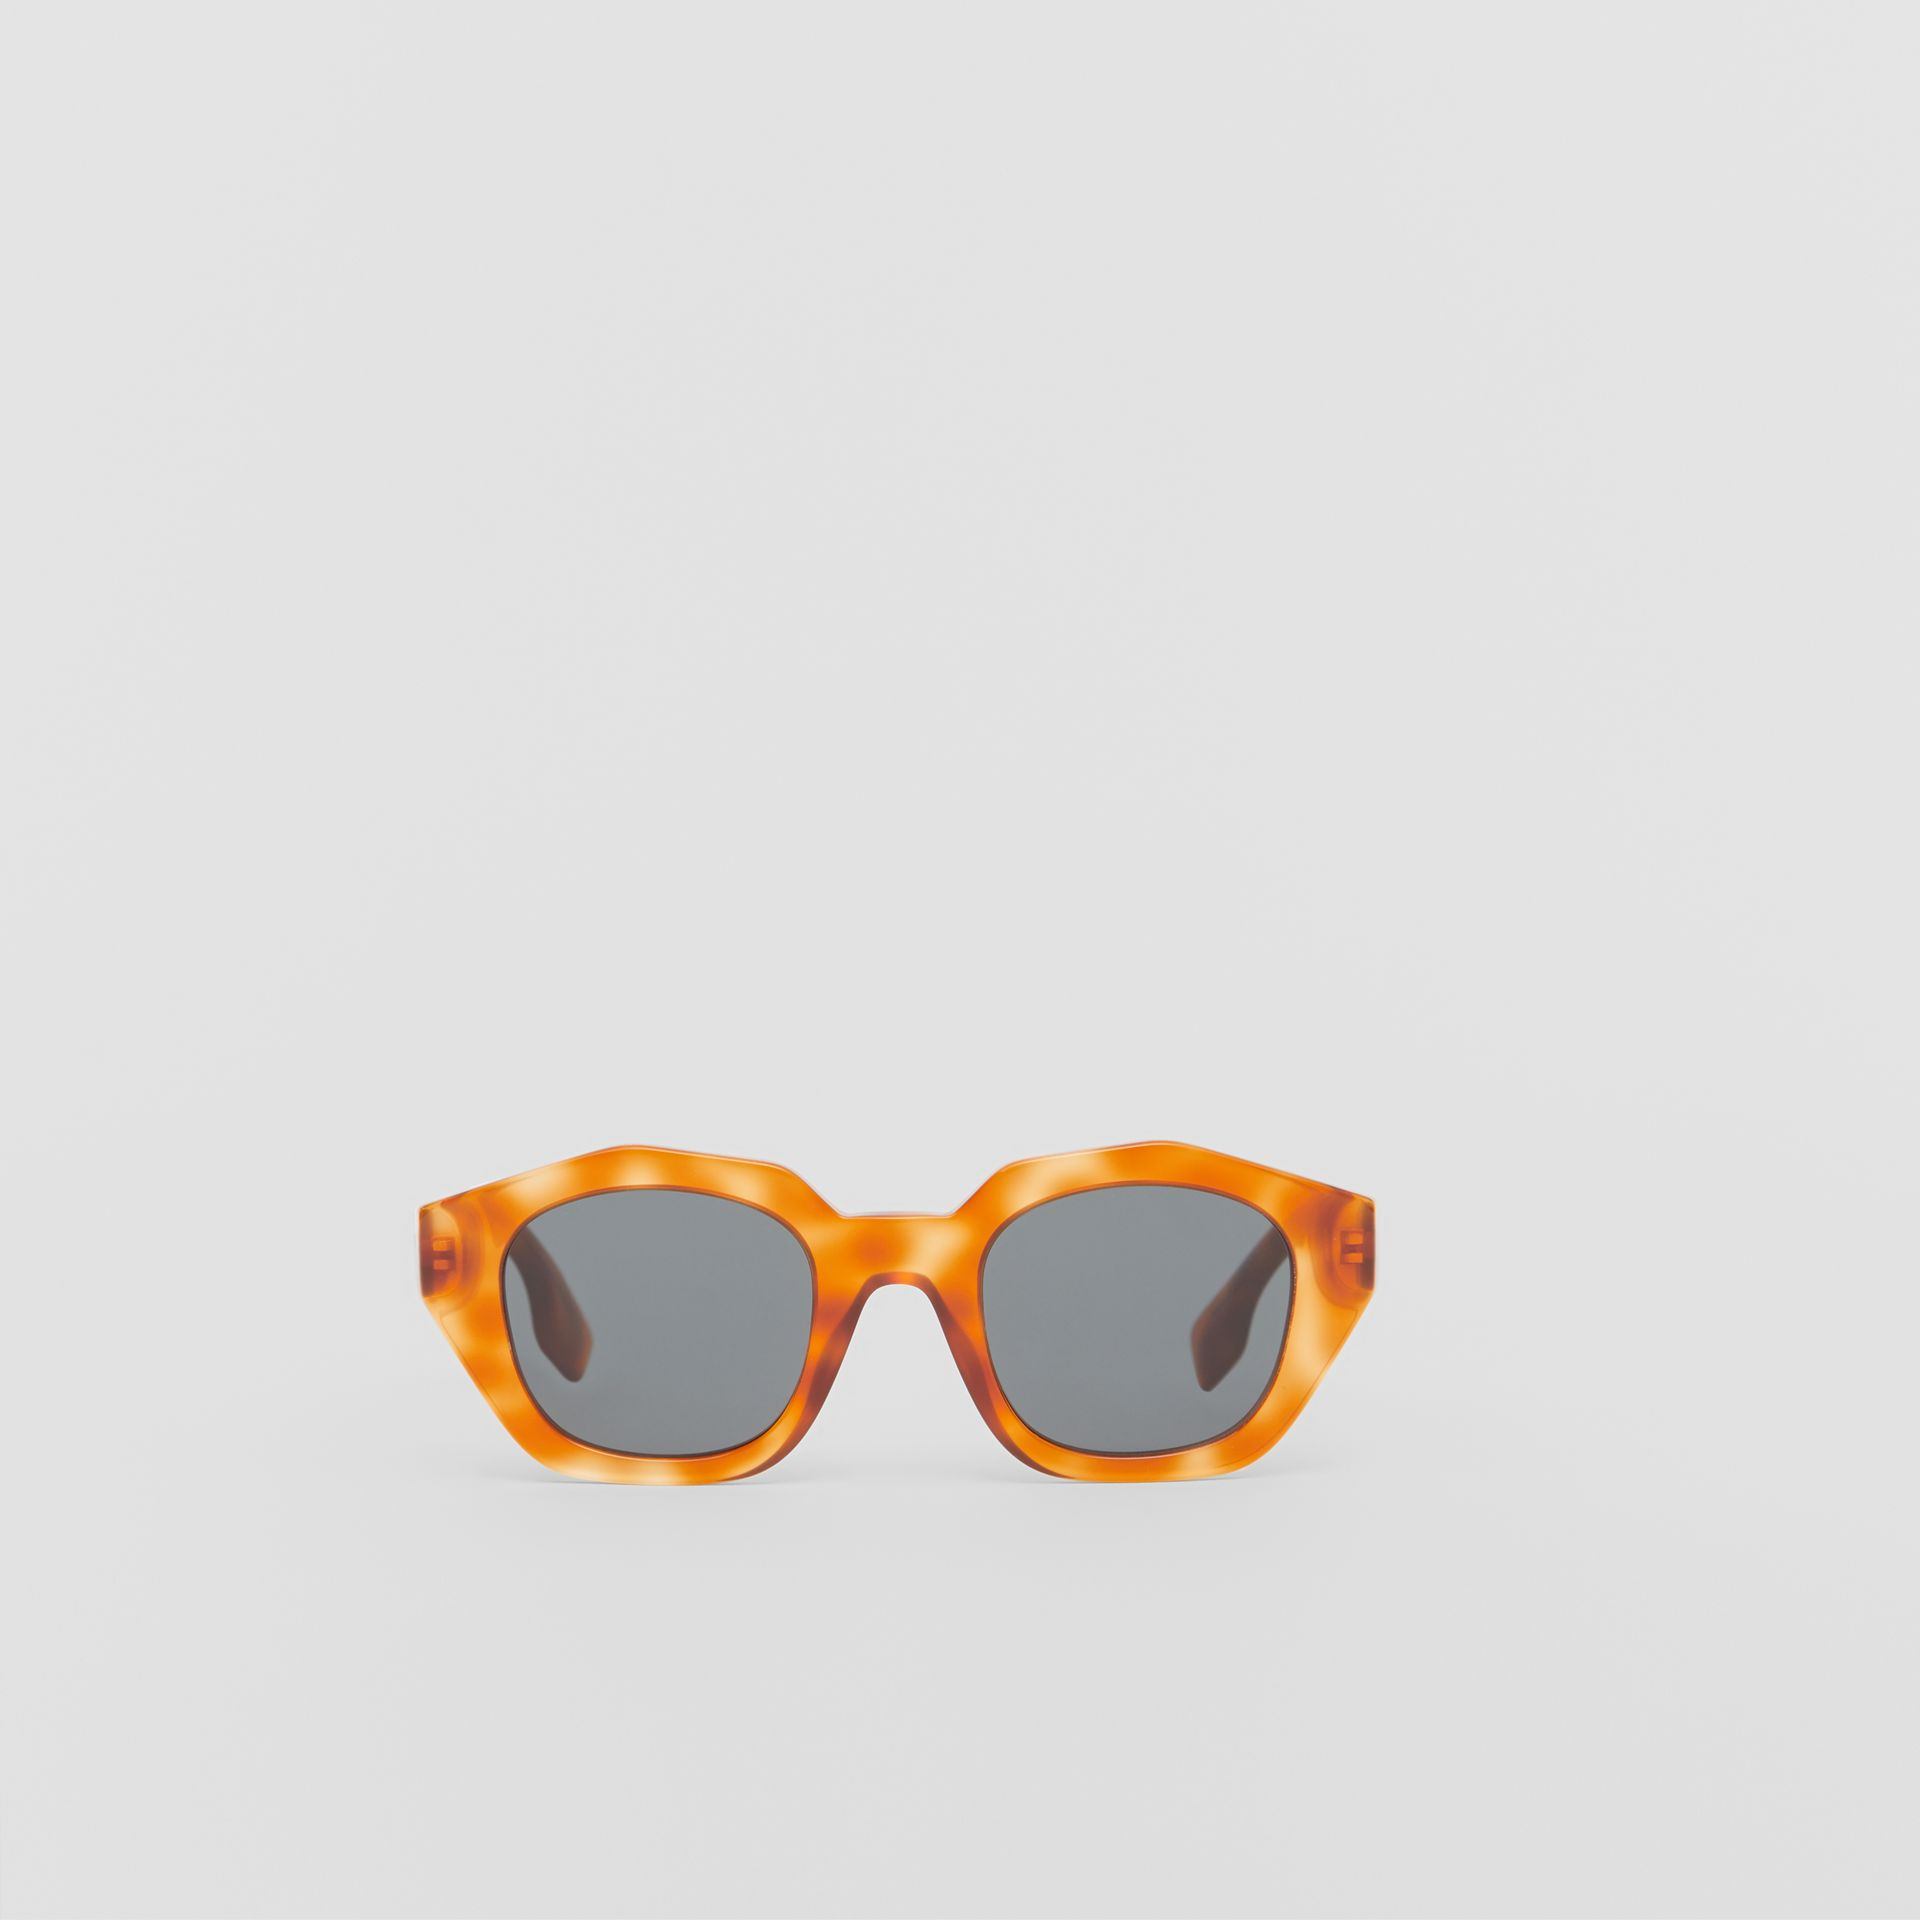 Geometric Frame Sunglasses in Tortoiseshell Amber - Women | Burberry Singapore - gallery image 0